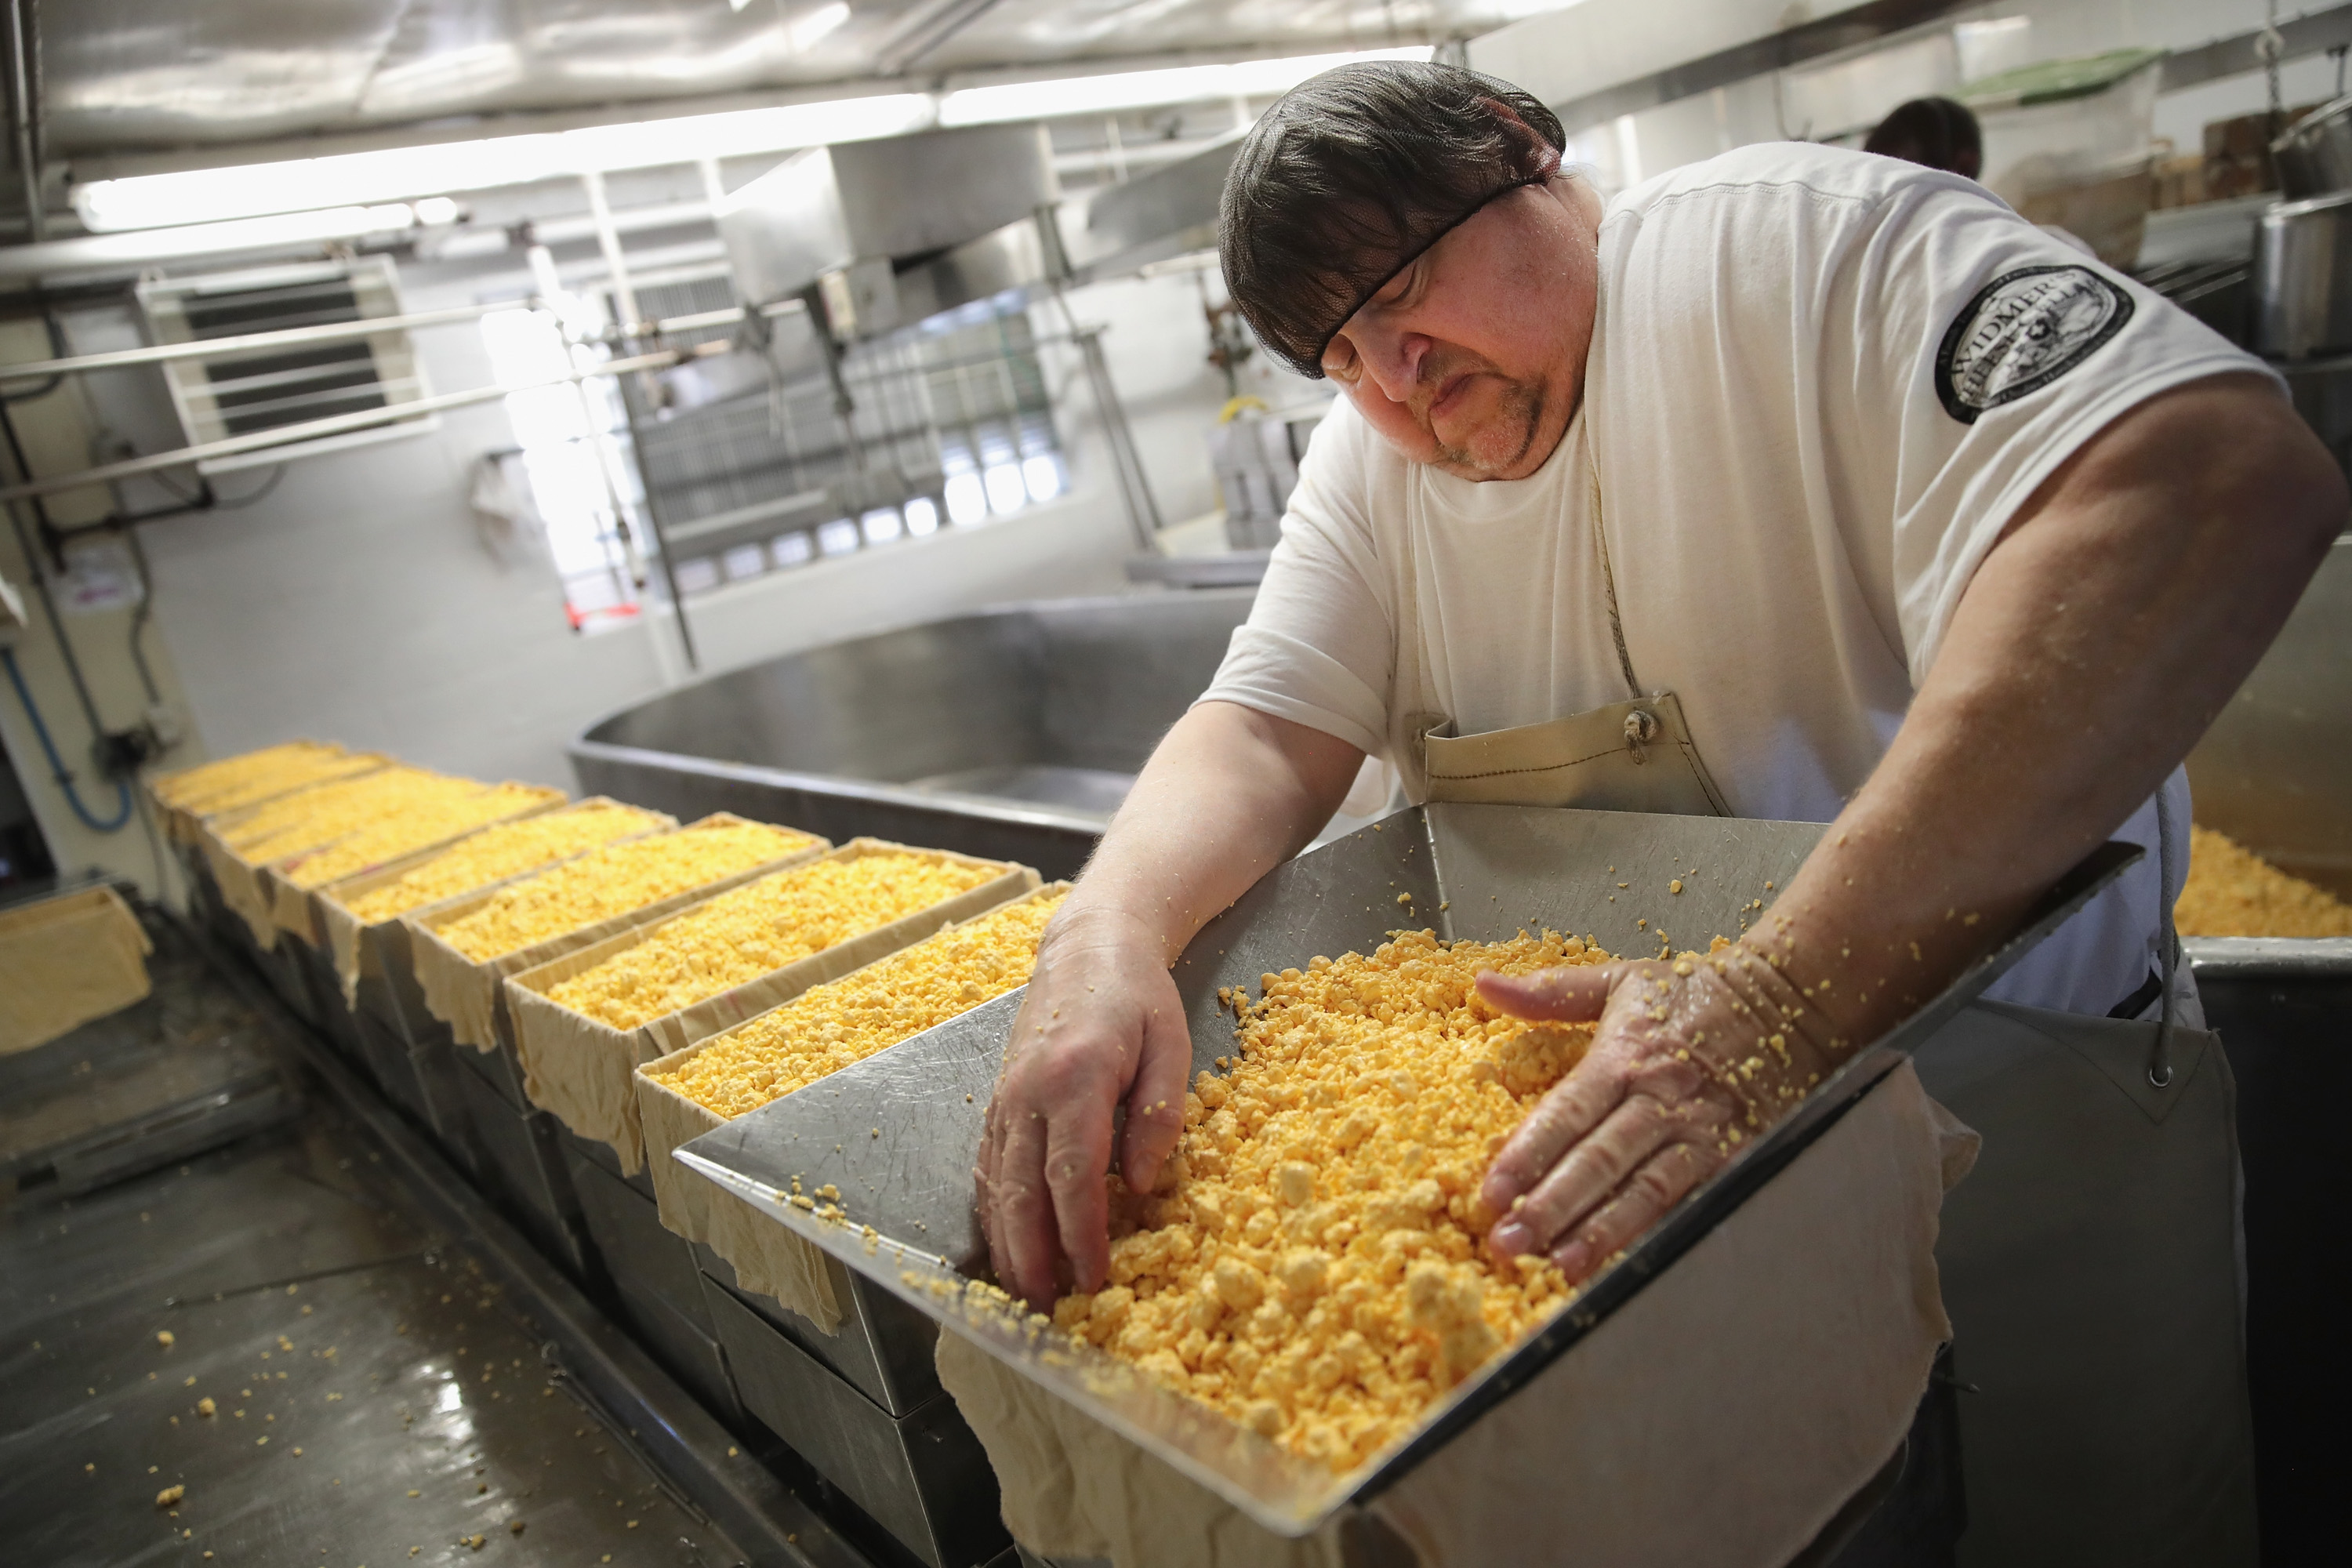 THERESA, WI - JUNE 27:  Lenny Zimmel puts Colby cheese curds into forms to make 40 pounds blocks of cheese at the Widmer's Cheese Cellars on June 27, 2016 in Theresa, Wisconsin. Widmer's is an artisanal cheesemaker that has produced cheese in the same facility for four generations much the same way as it was made by the founder, with traditional open vats and curds being stirred and scooped into molds by hand.  Record dairy production in the United States has produced a record surplus of cheese causing prices to drop. Despite this surplus Widmer's says it continues to see growth as consumers continue to gravitate toward craft-made food products.